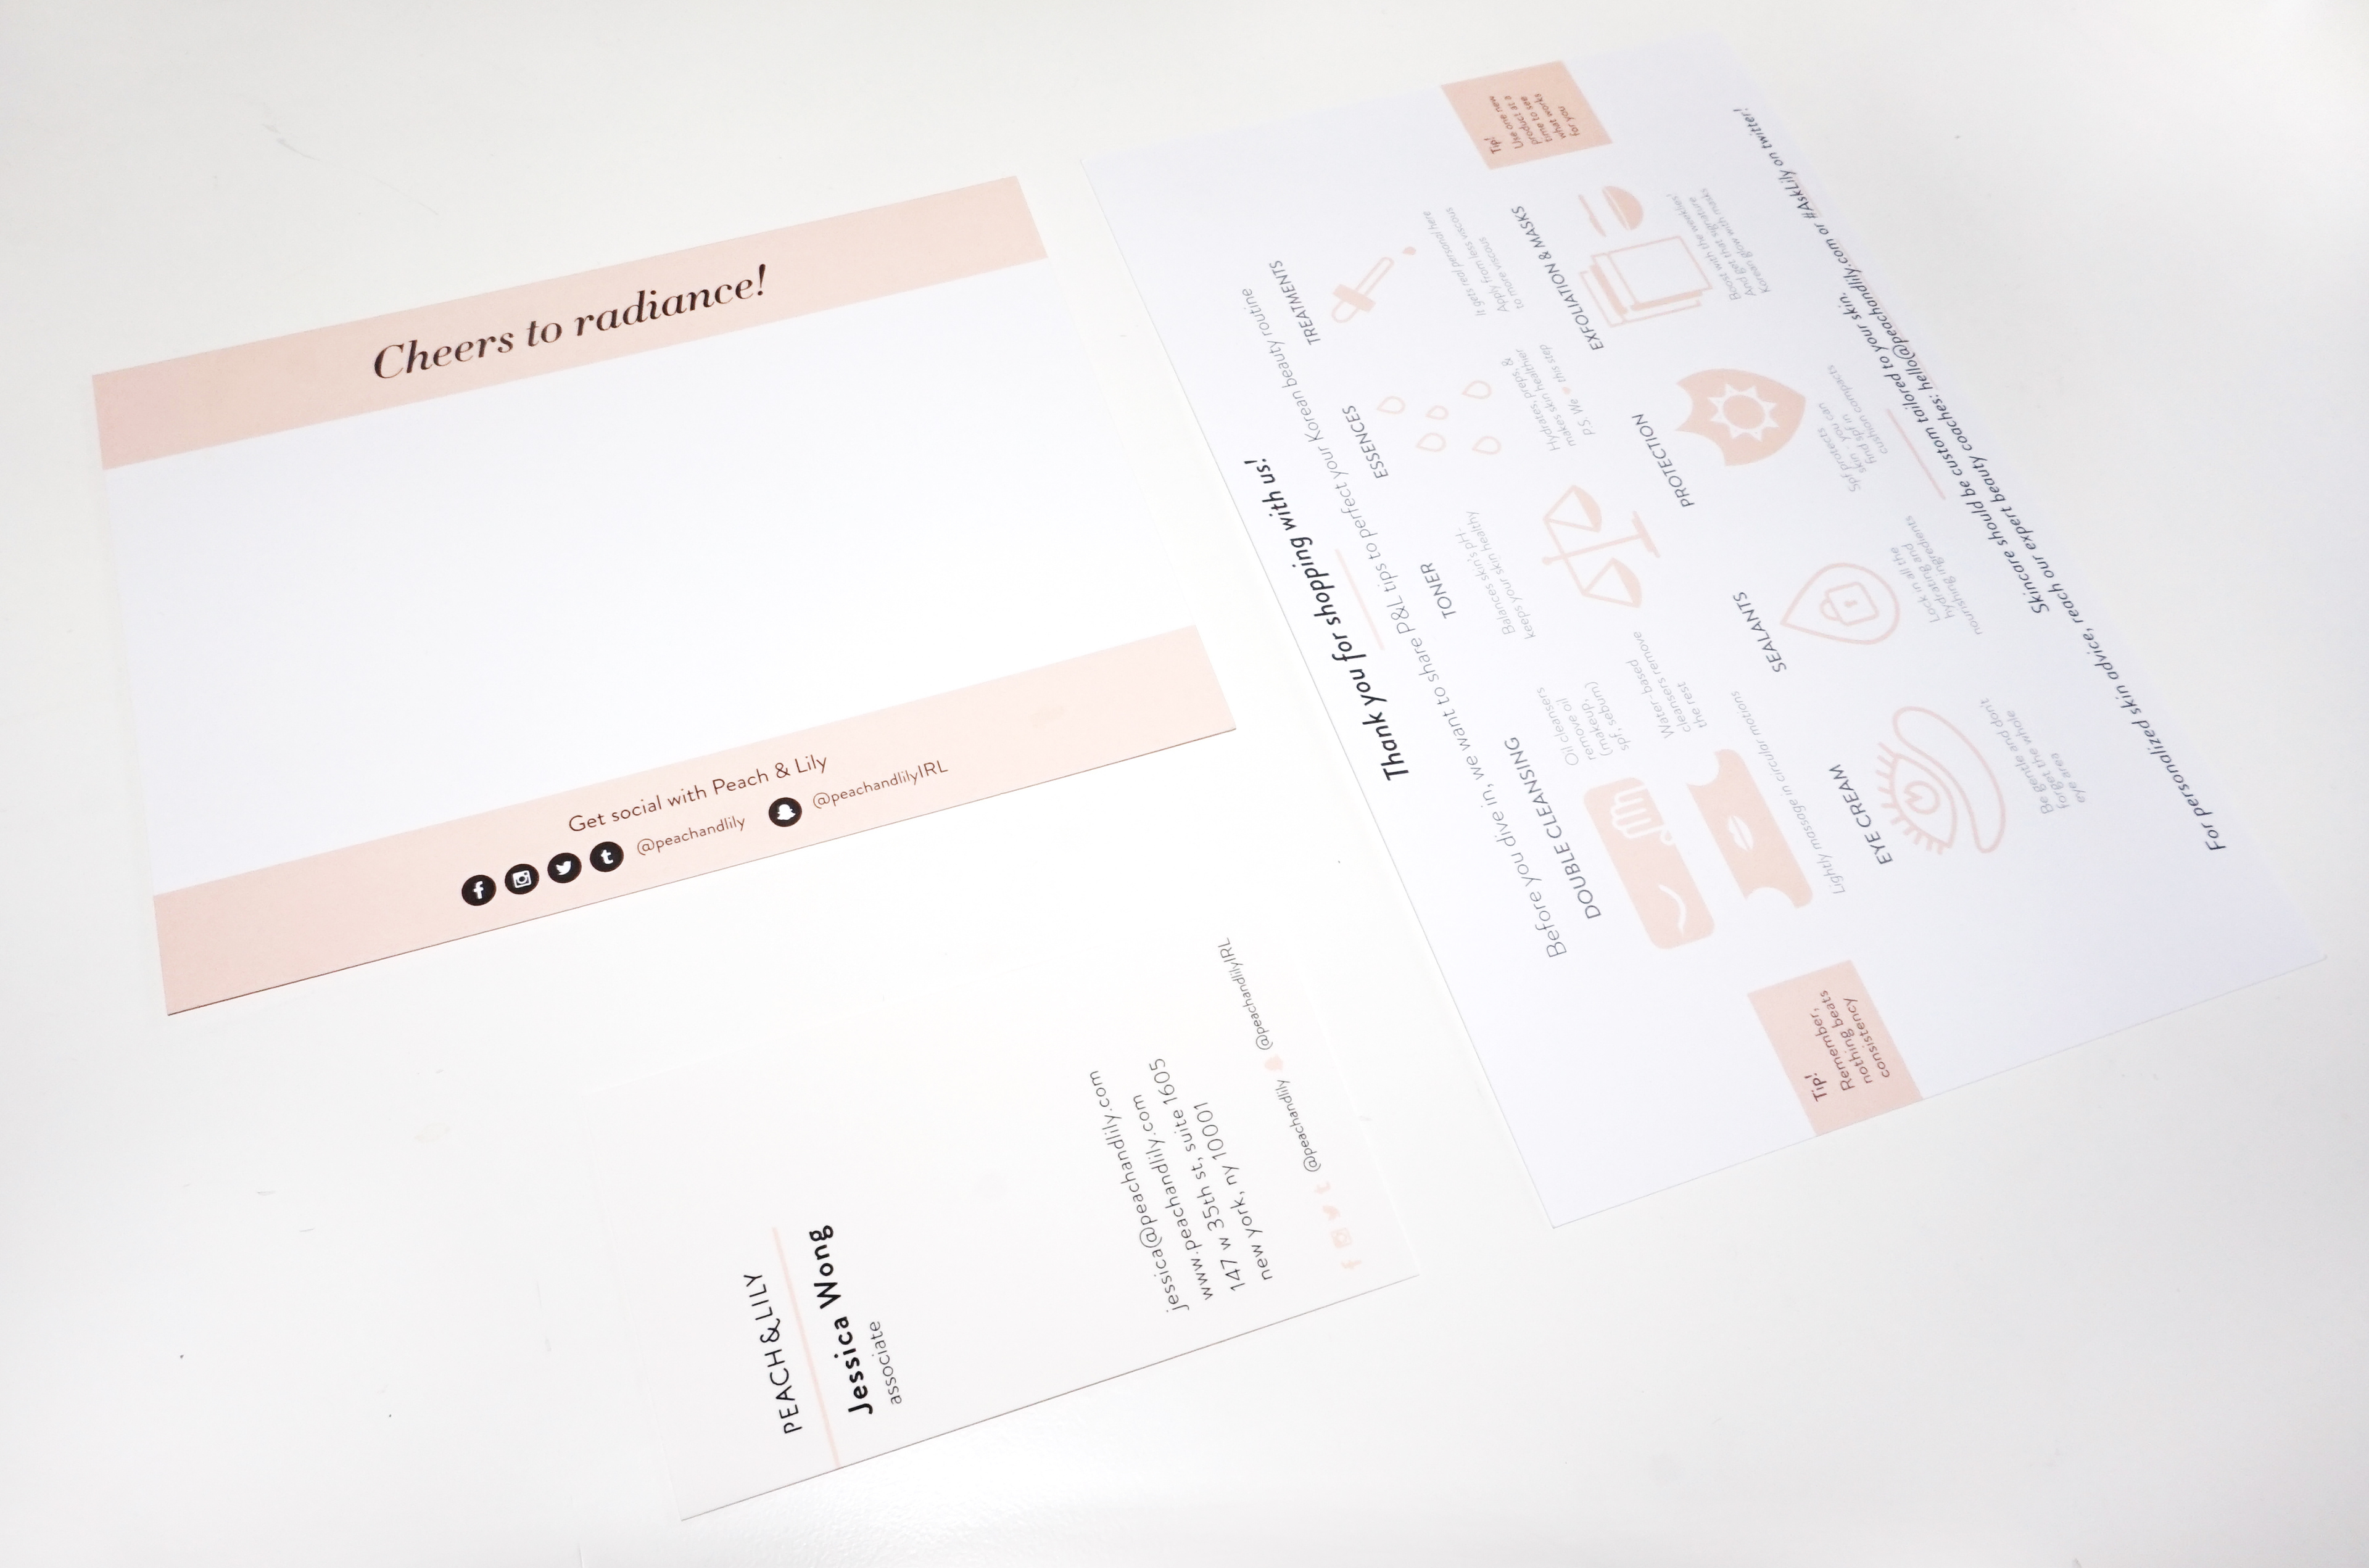 Jessica w peach lily print collateral business cards thank you cards 10 step korean beauty infographic inserts reheart Images